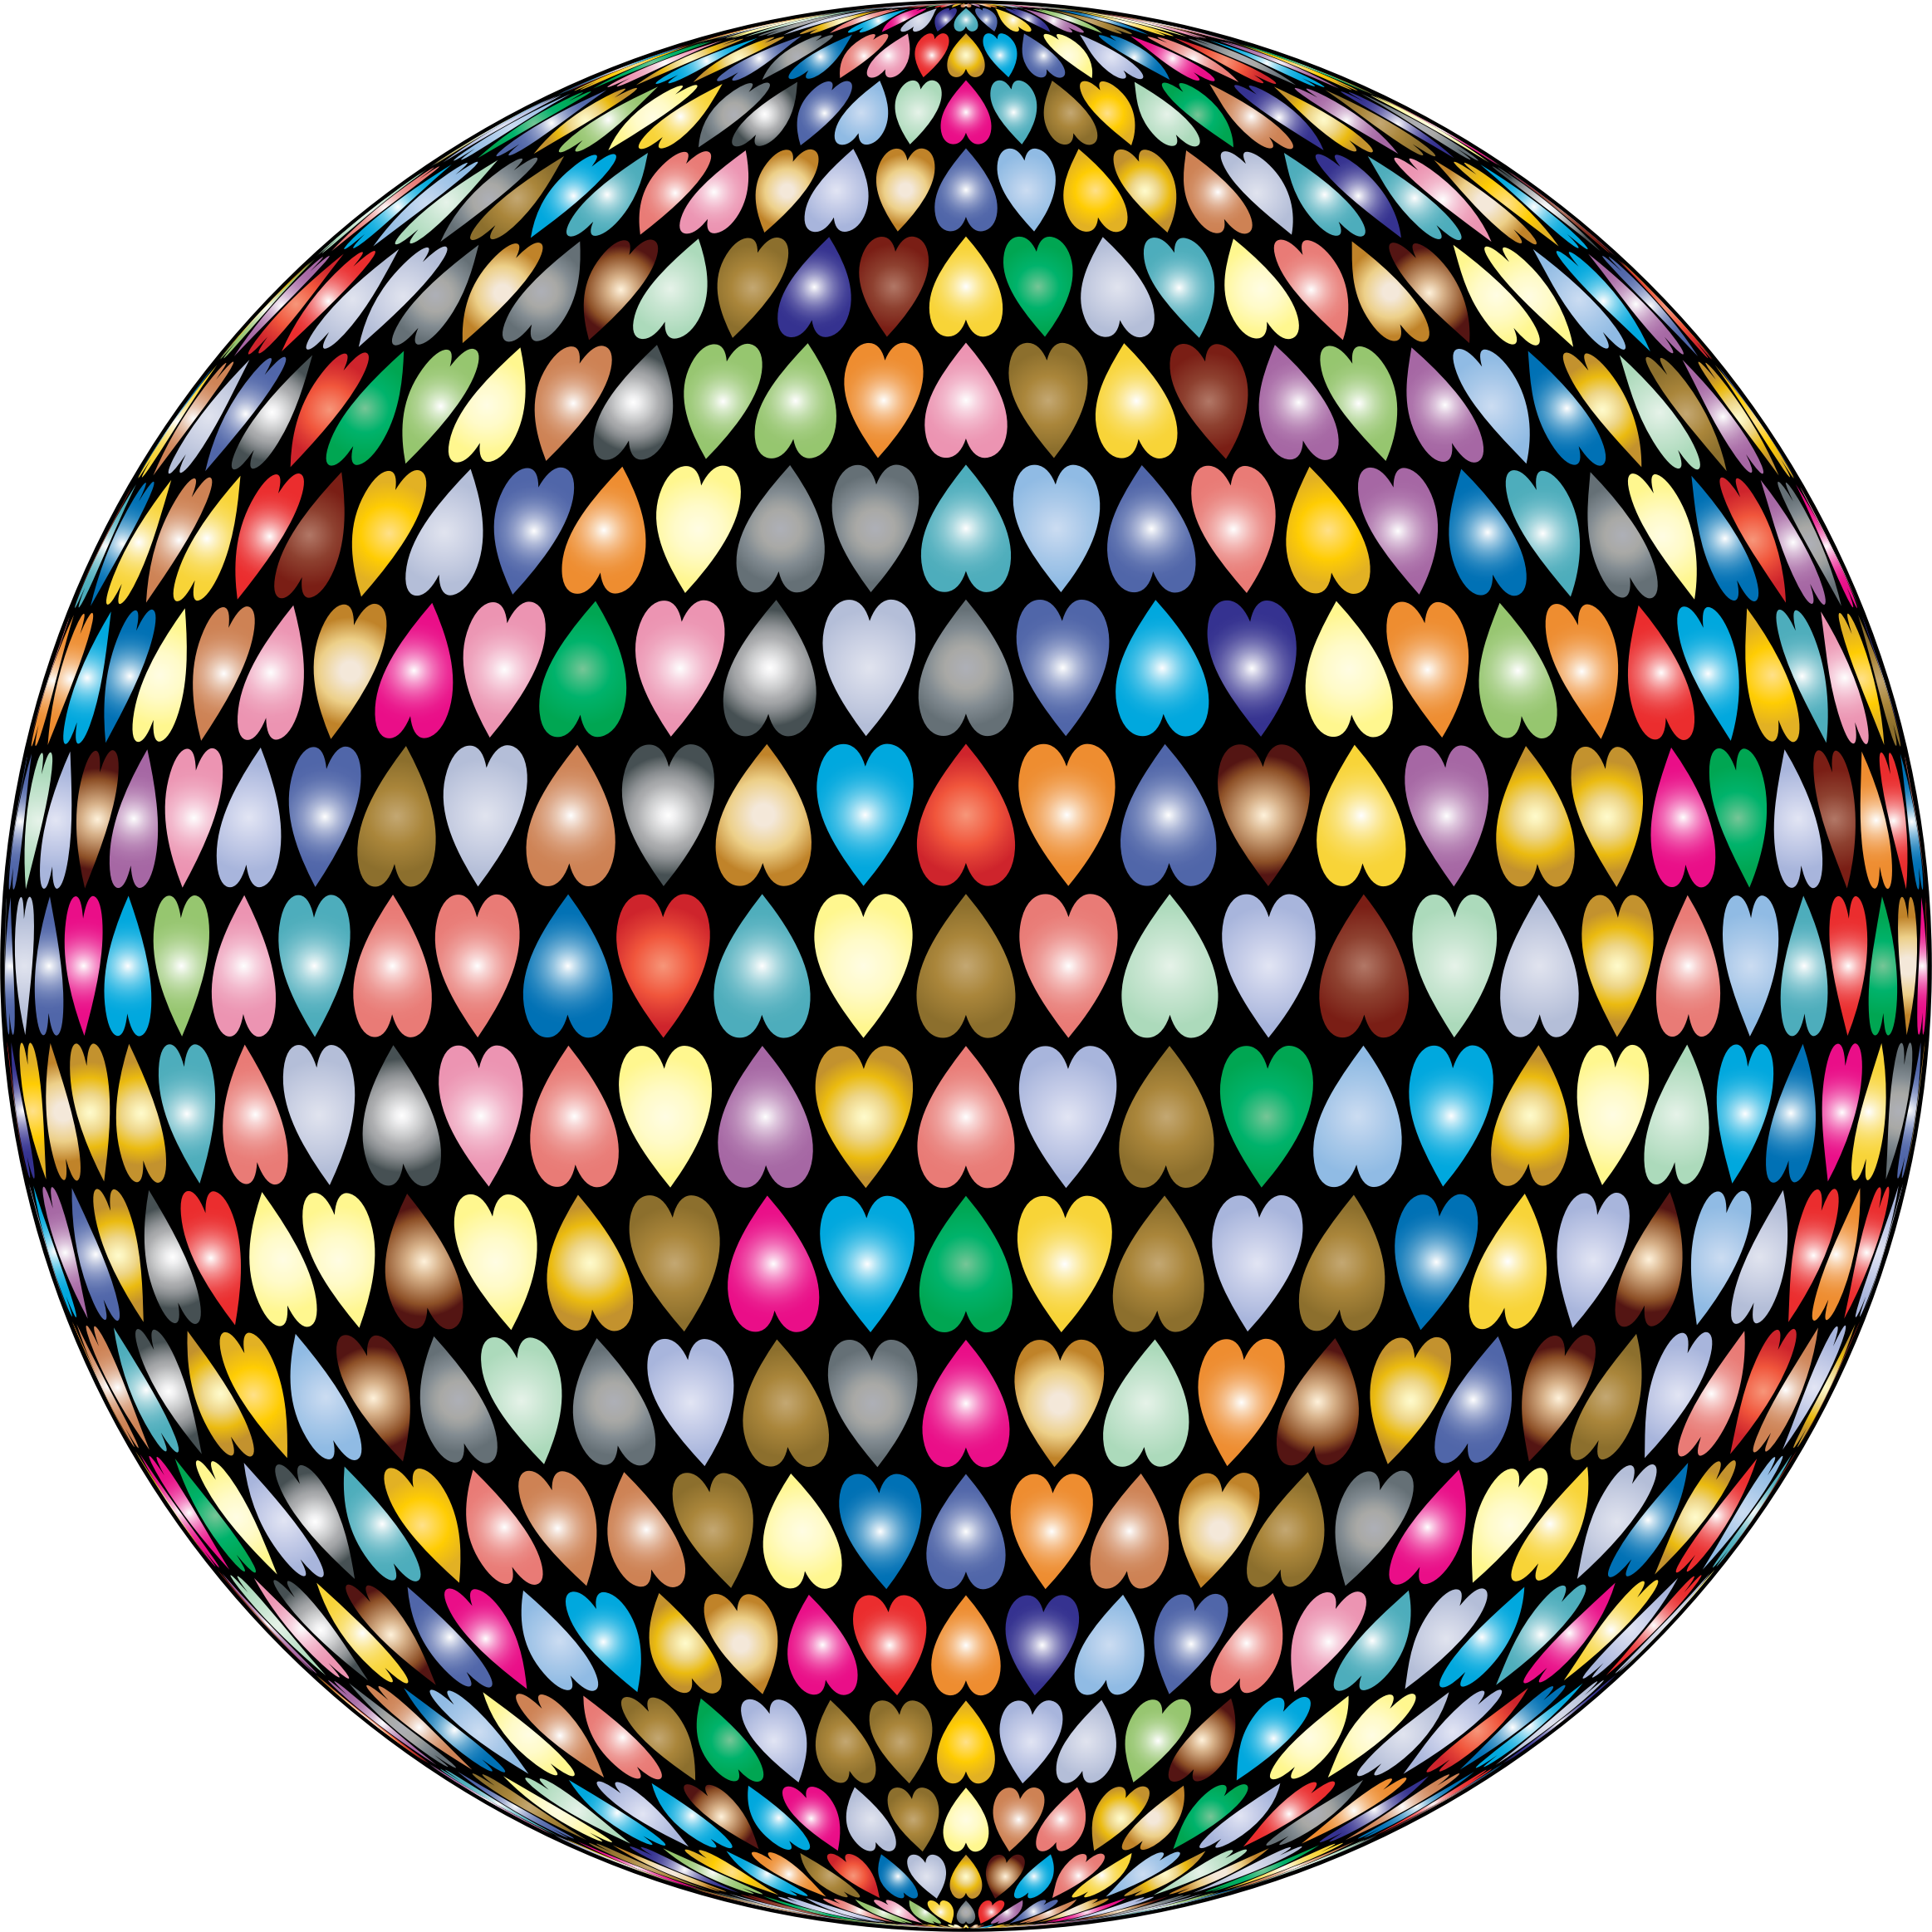 Prismatic Alternating Hearts Sphere 2 by GDJ